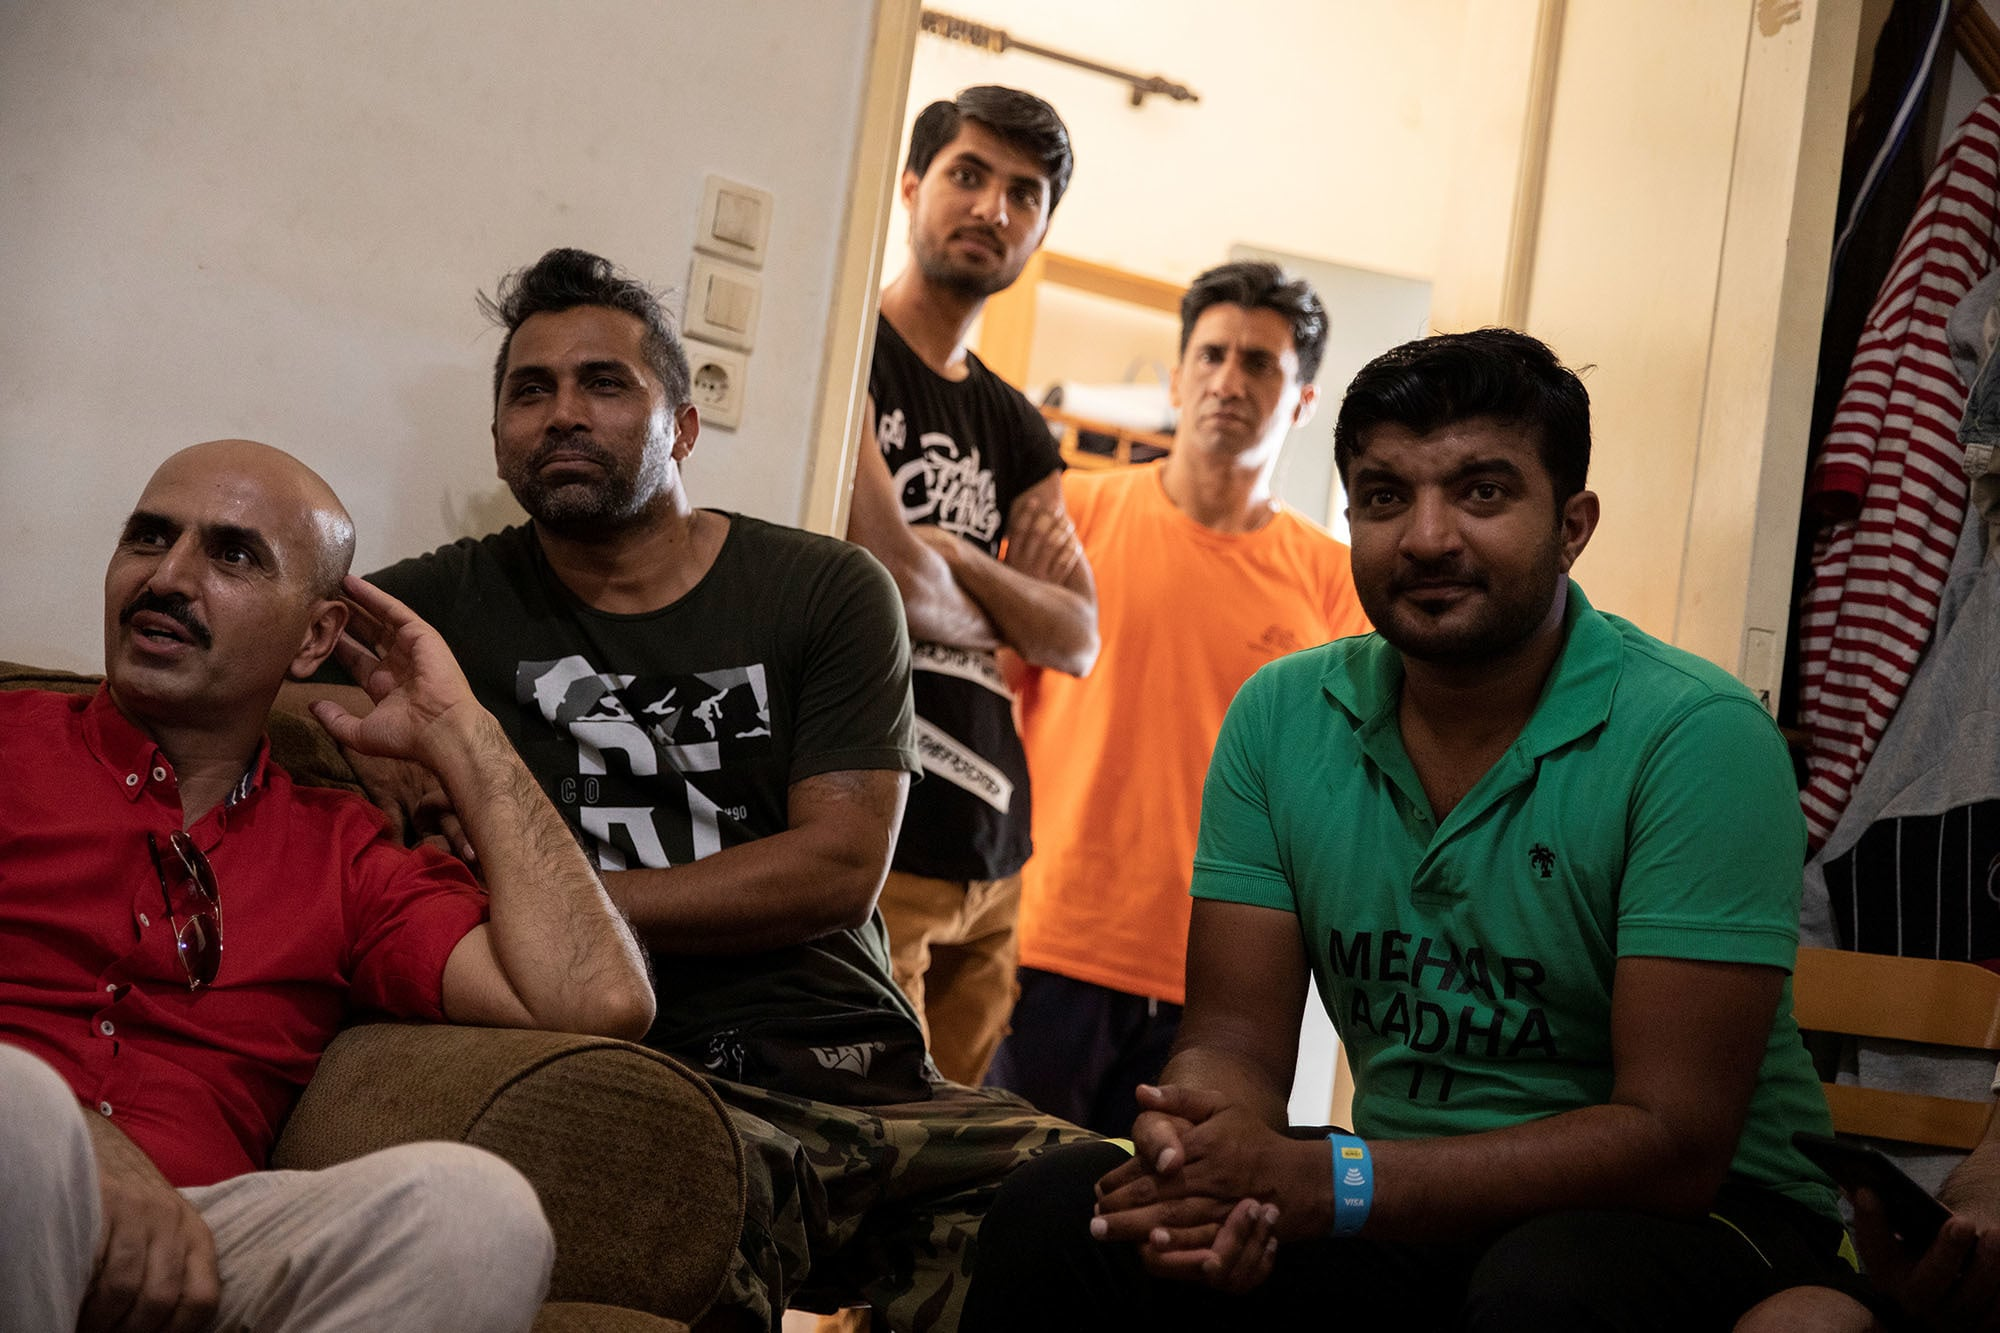 Pakistani street cricketer Awais Mughal, 30, (R) watches his national cricket team's World Cup game against South Africa in an apartment in Athens, Greece on June 23. — Reuters